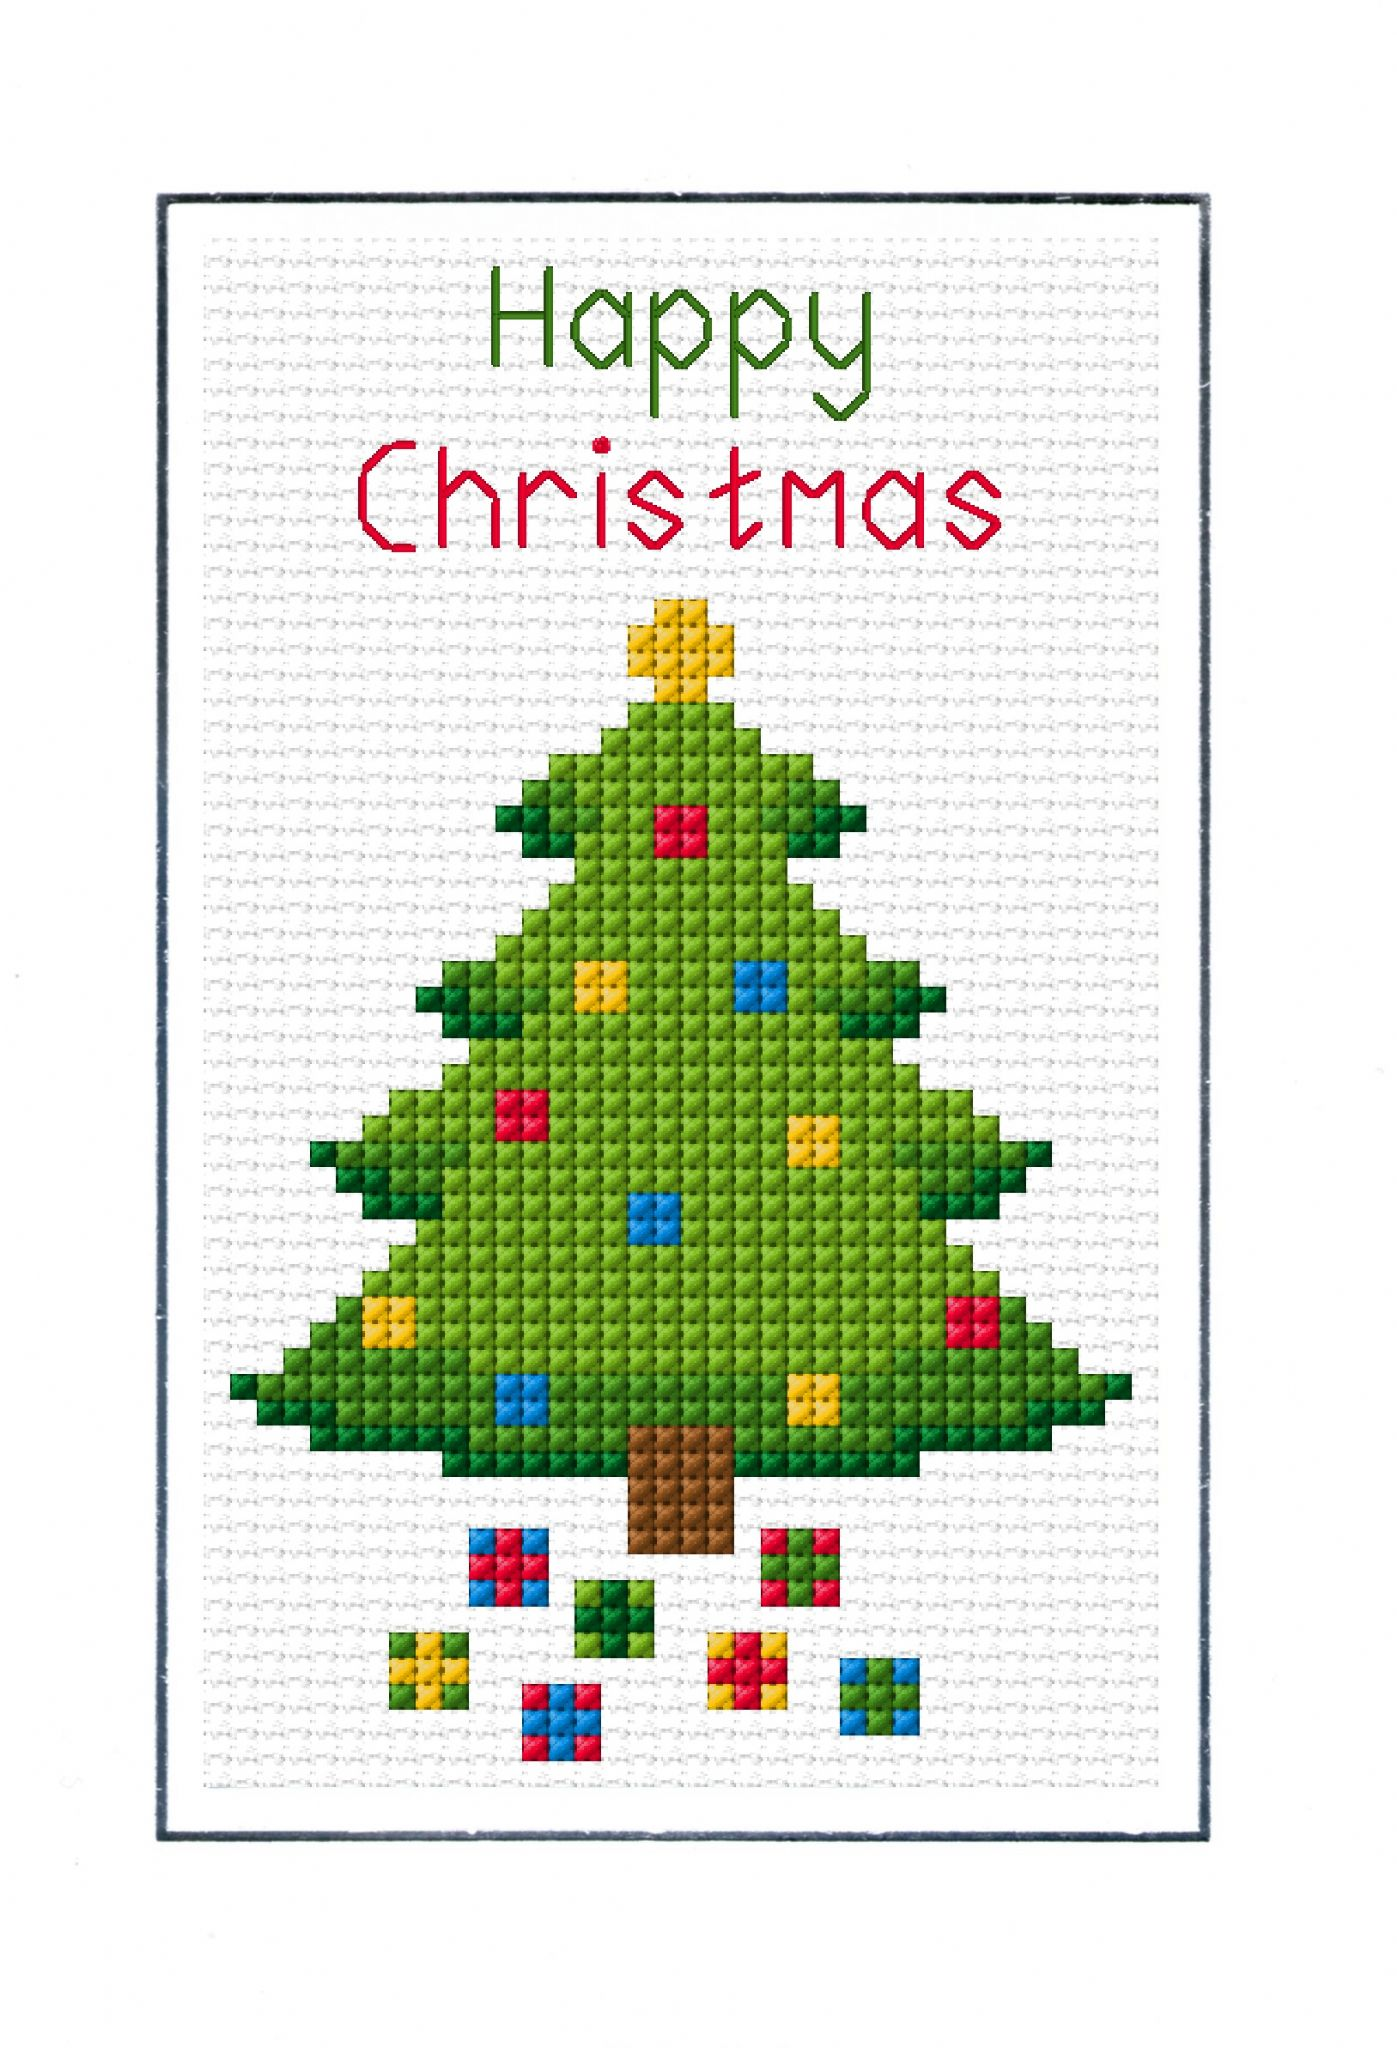 Happy Christmas Tree - Cross Stitch A6 Card Kit